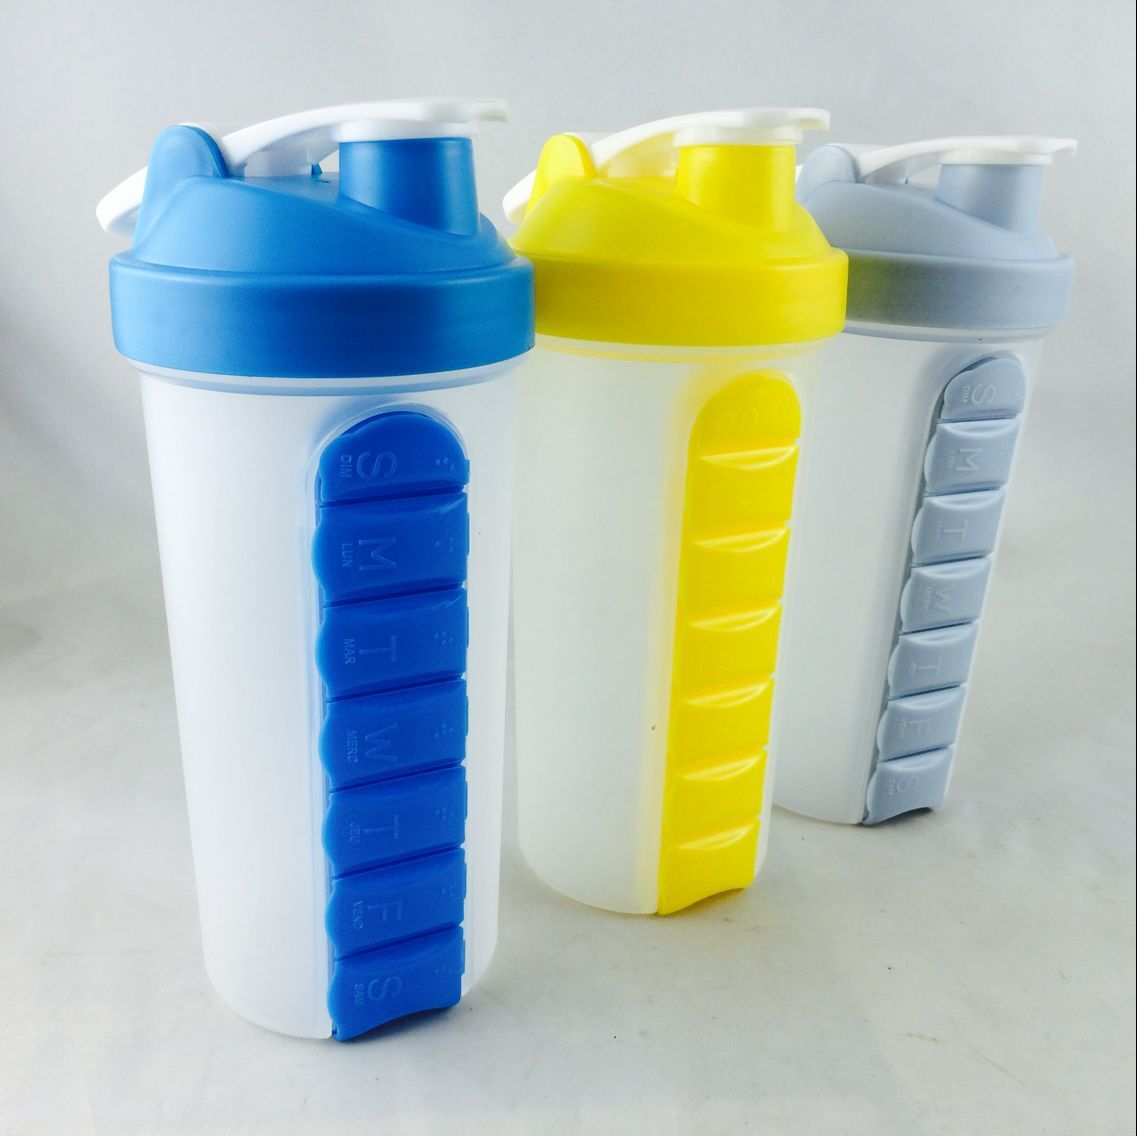 2 in 1 pill box cup